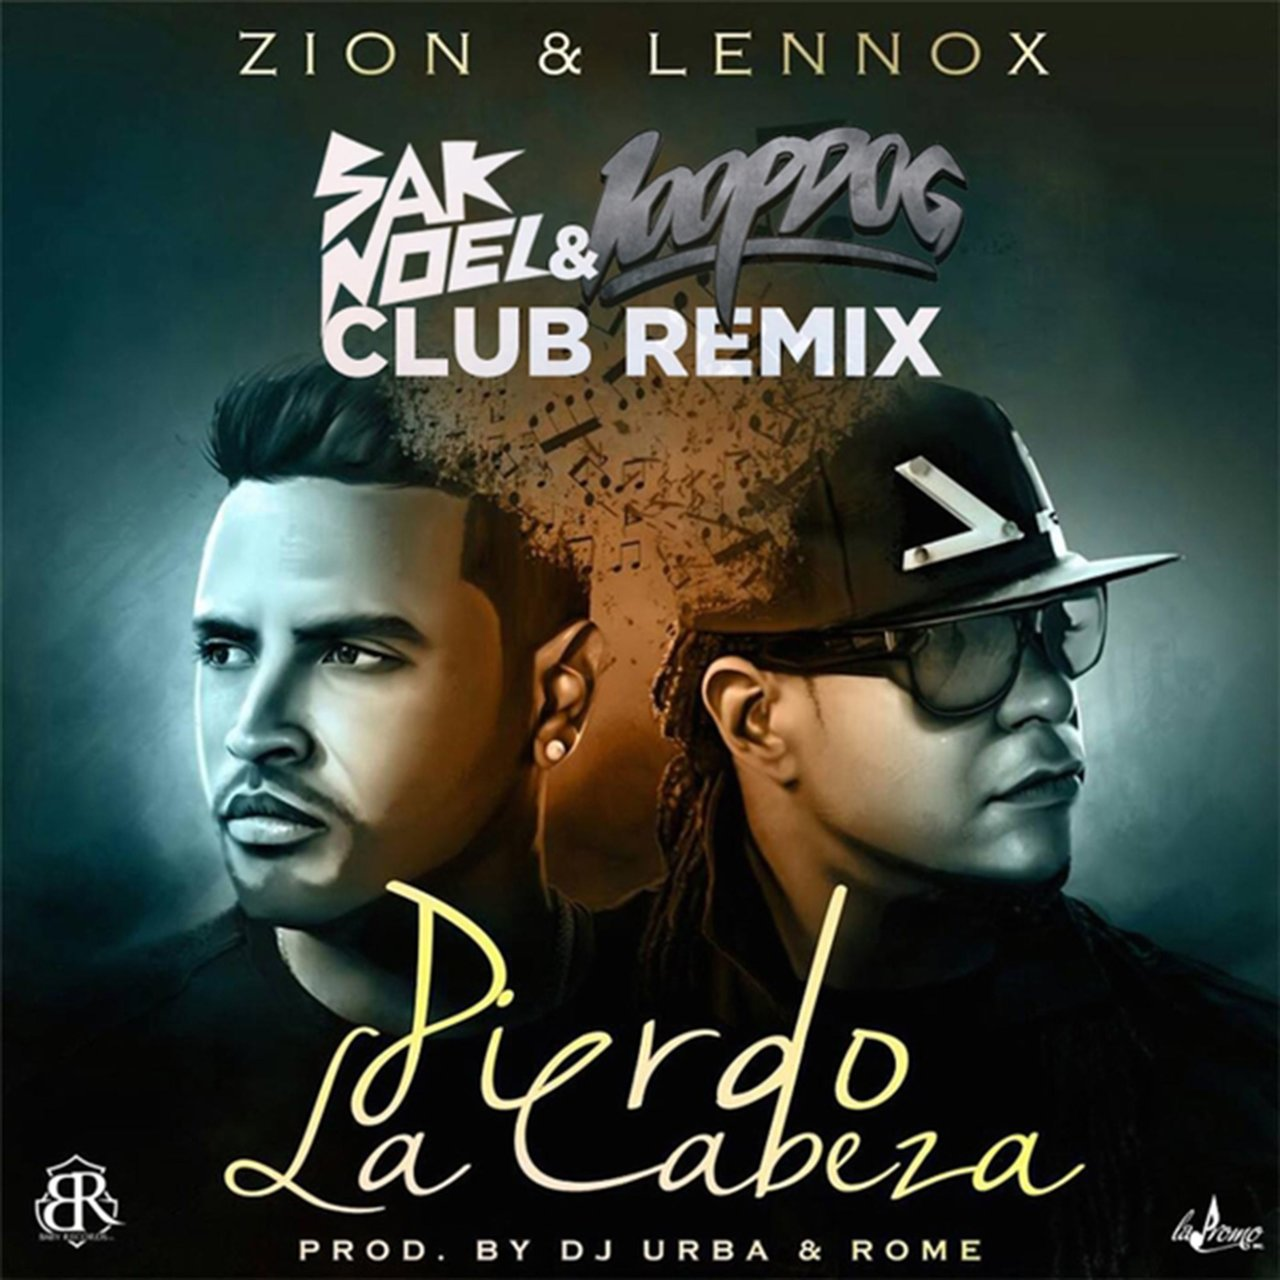 Pierdo la Cabeza (Sak Noel & Loopdog Club Remix)